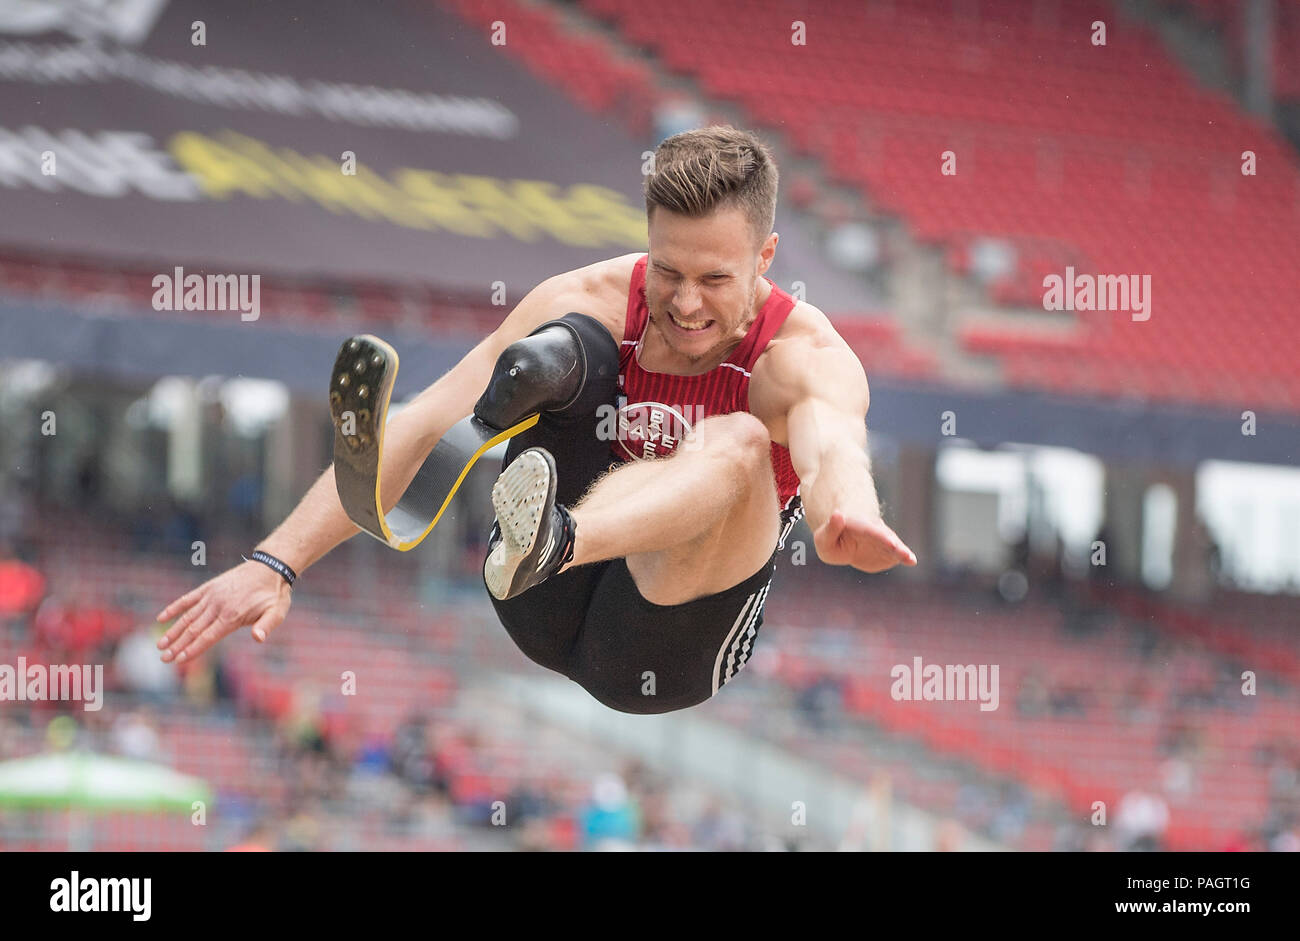 Winner Markus REHM, TSV Bayer 04 Leverkusen, 1st place, action, final long jump T44 of the men on 21.07.2018. German Athletics Championships 2018, from 20.07. - 22.07.2018 in Nuernberg/Germany. | usage worldwide - Stock Image